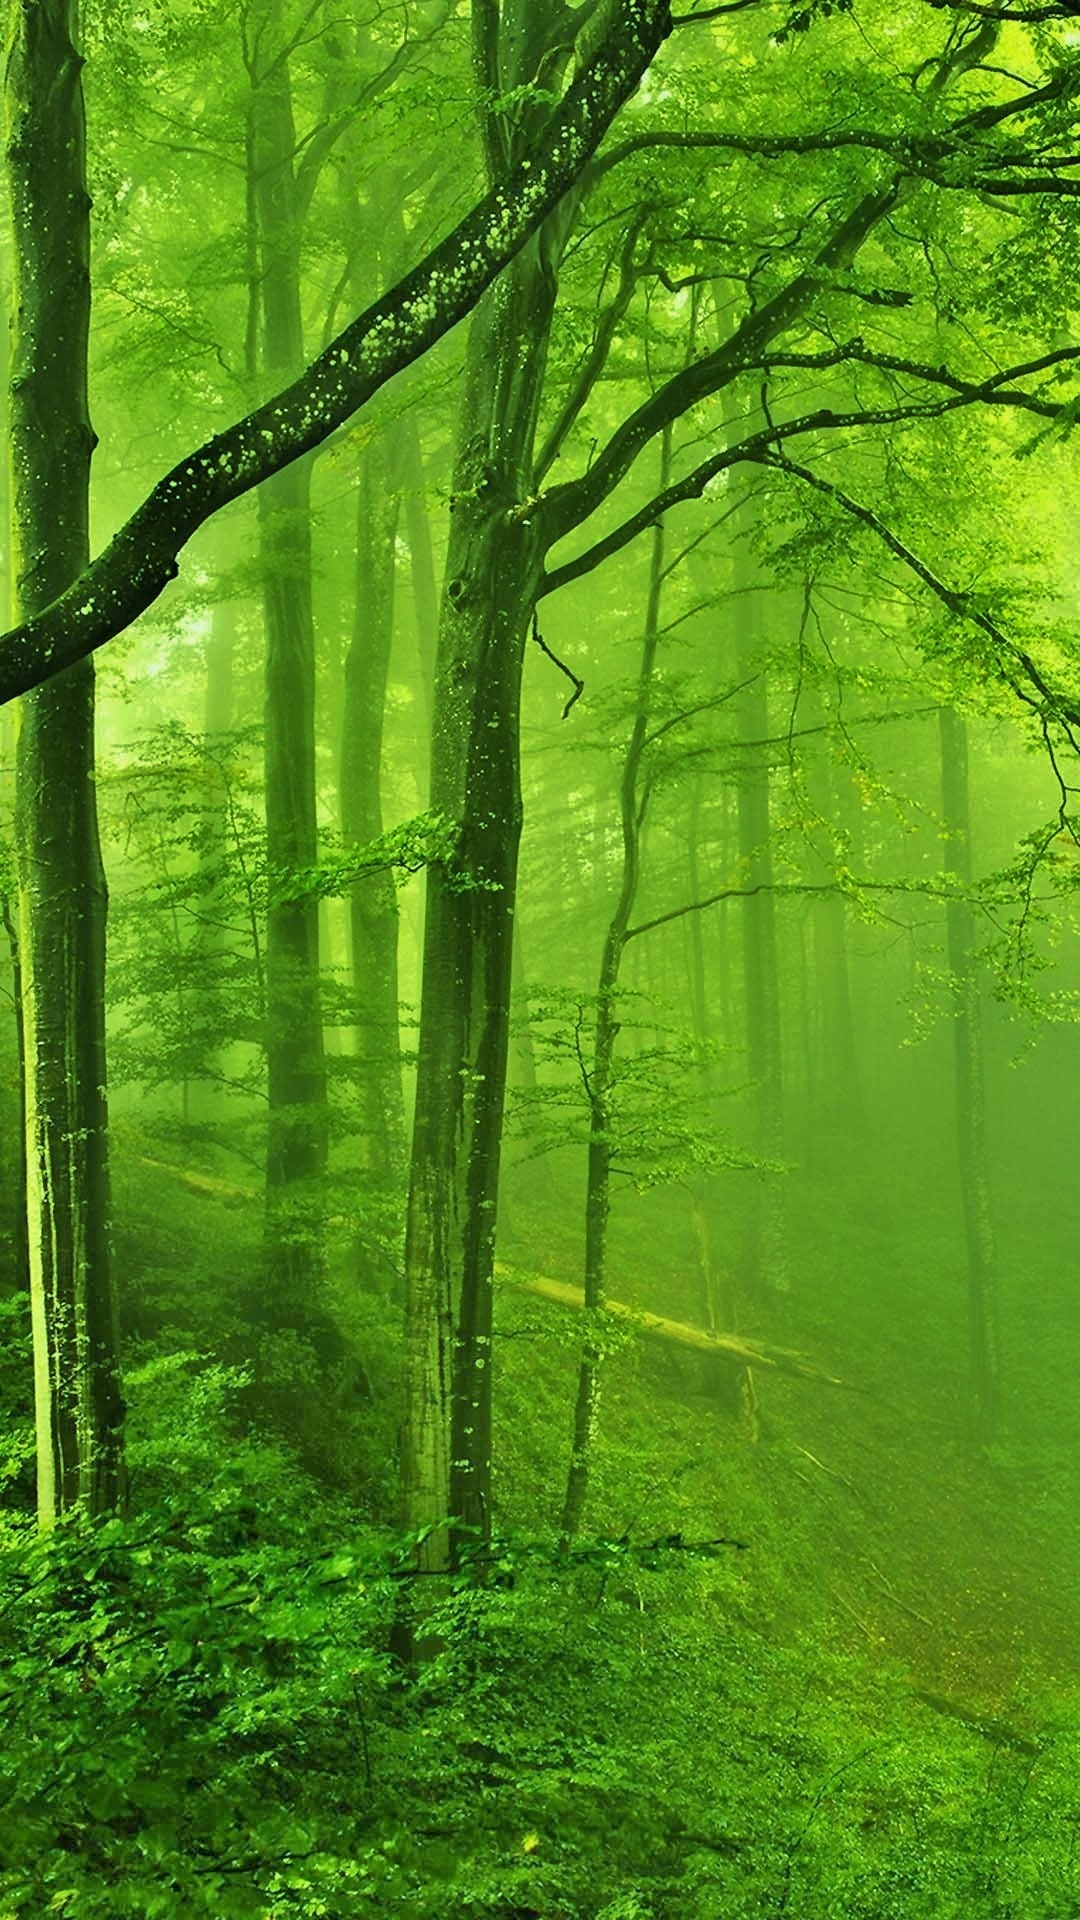 Green misty forest catalog photo